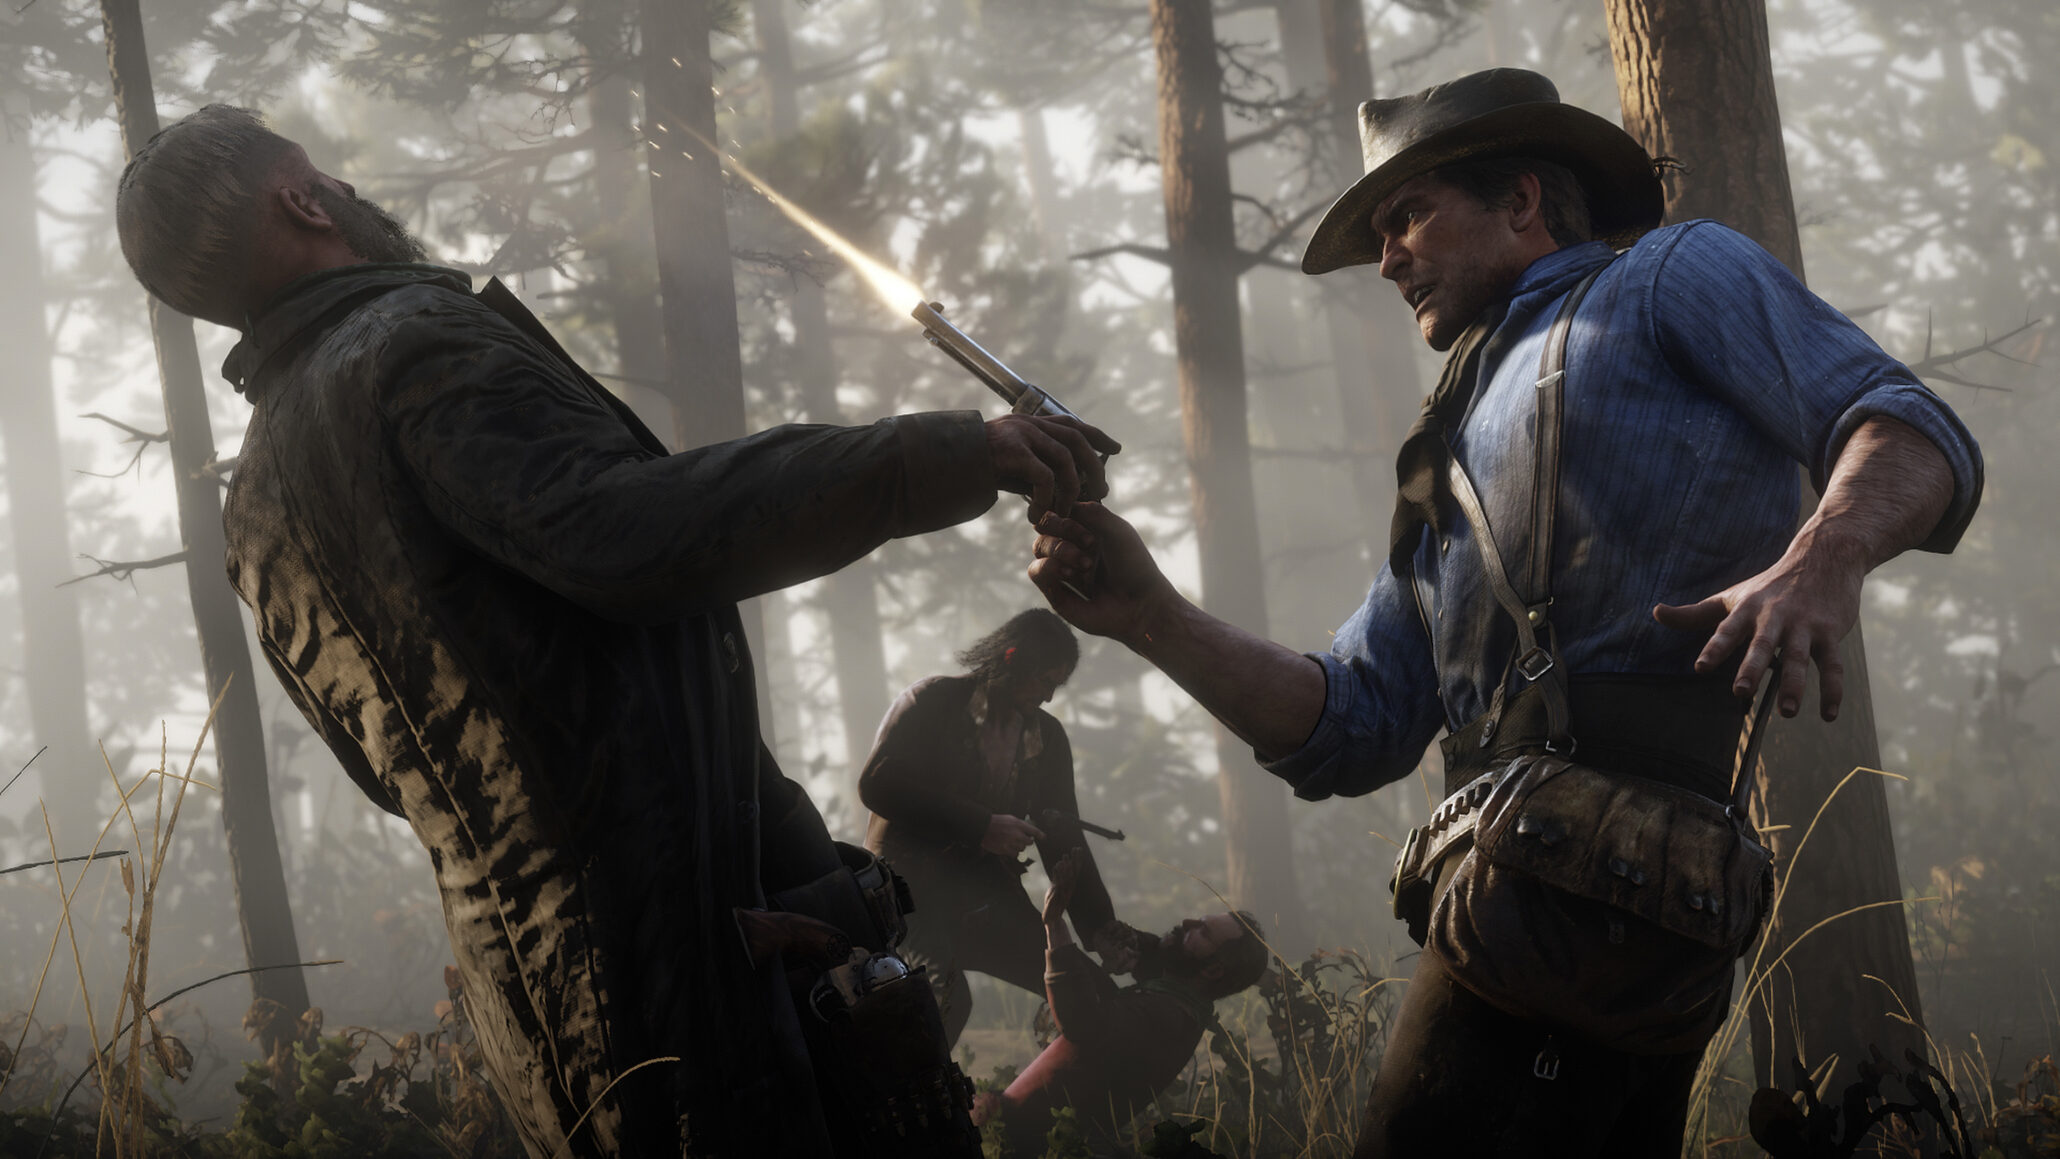 Red Dead Redemption 2 Steelbook Case Images Surface Online